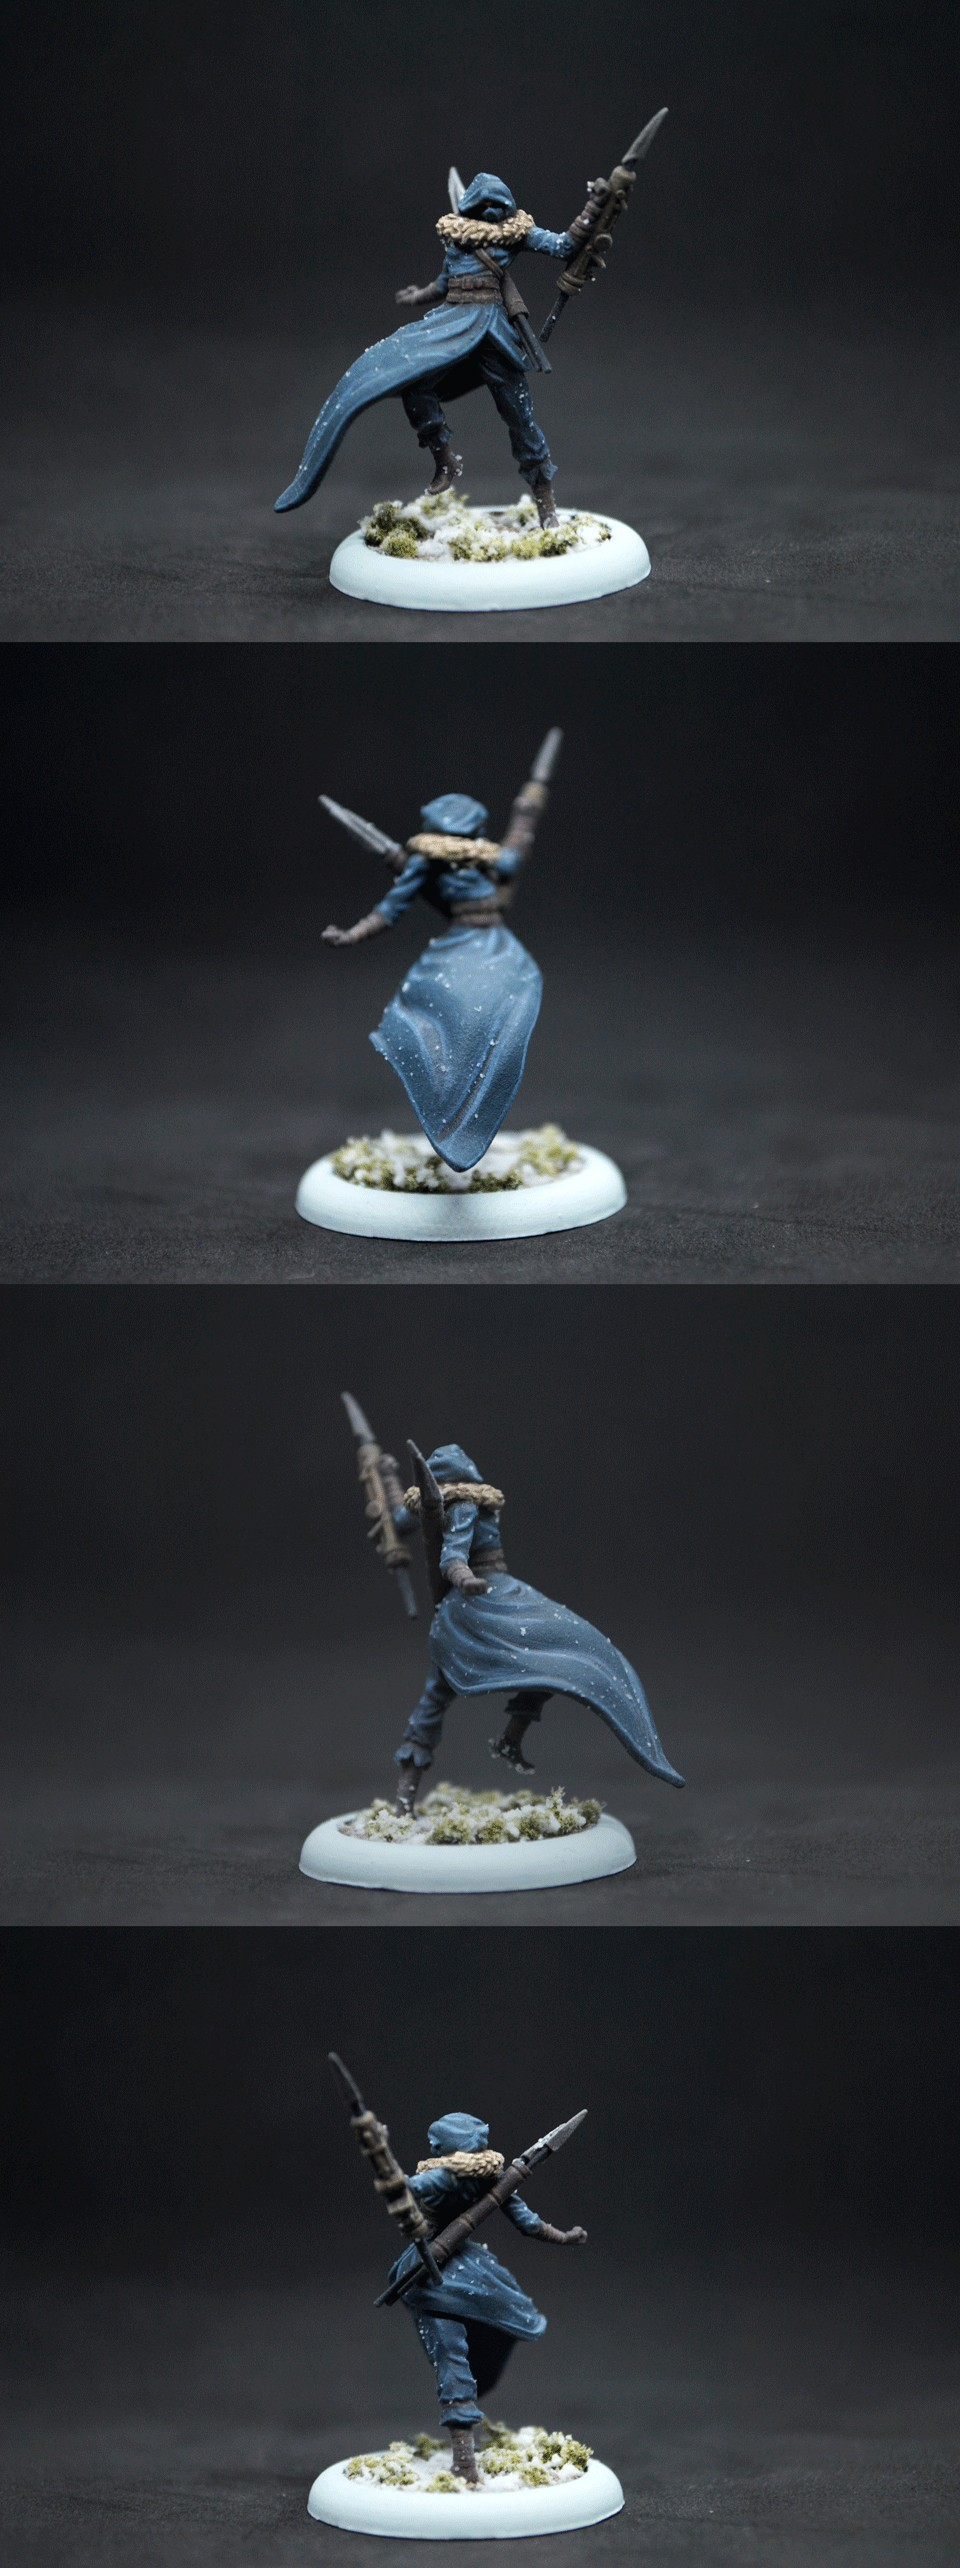 Malifaux 2E - December Acolyte 3